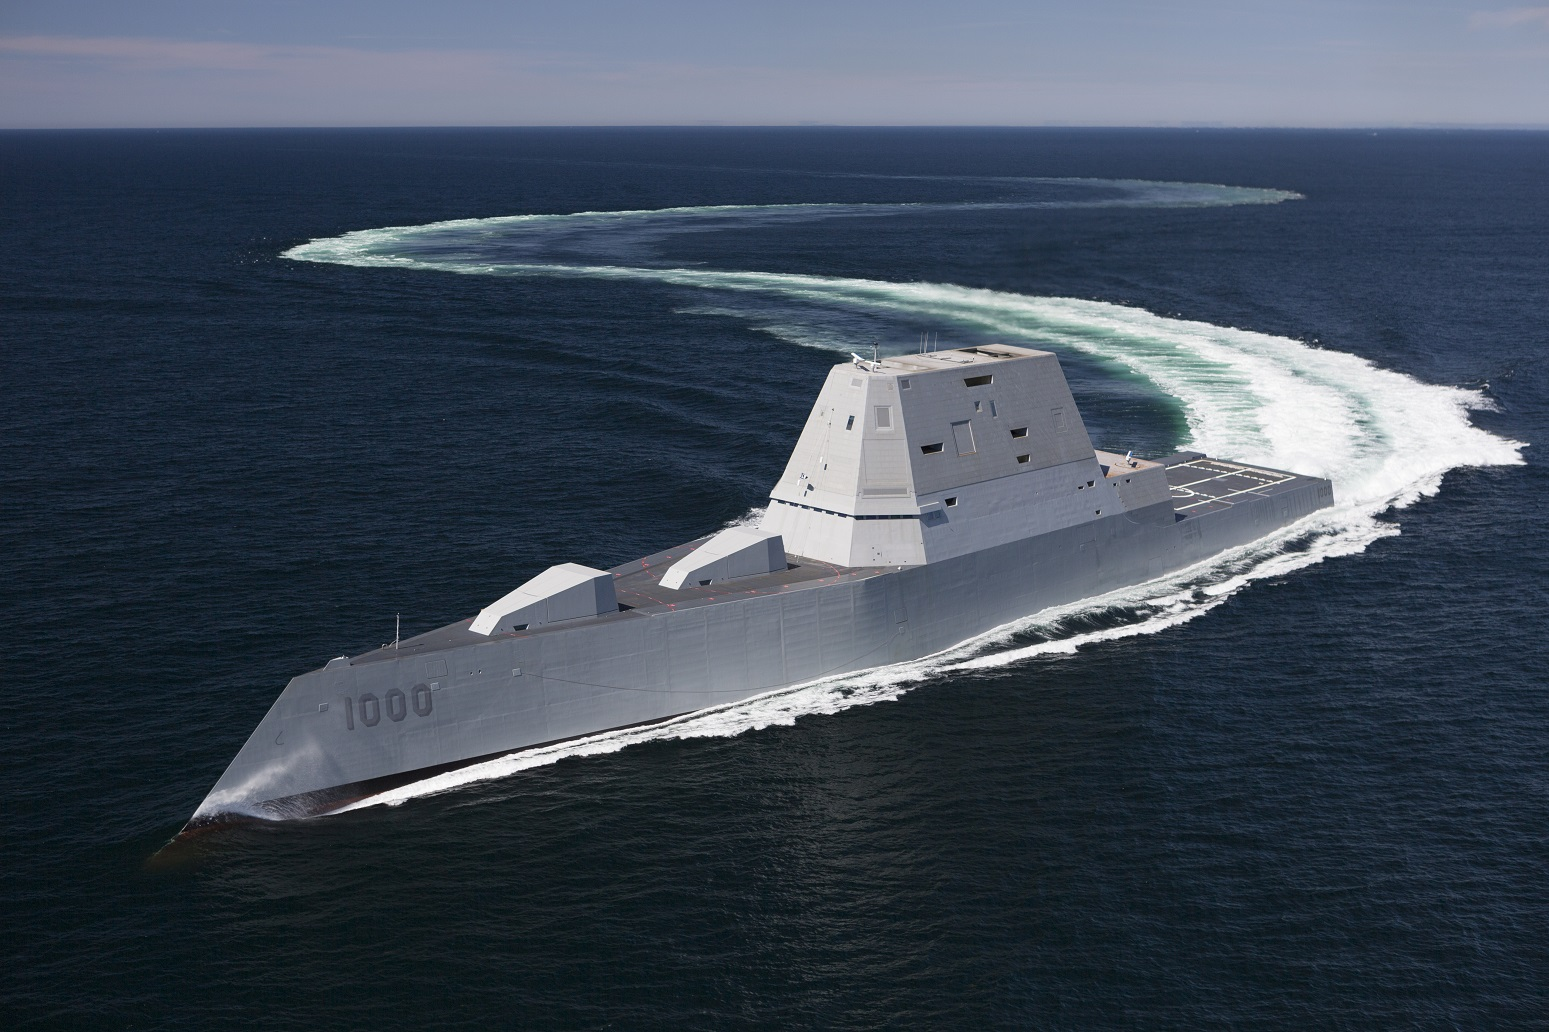 FIRE!: The U.S. Navy's Railgun May Soon See Testing On a Real Warship